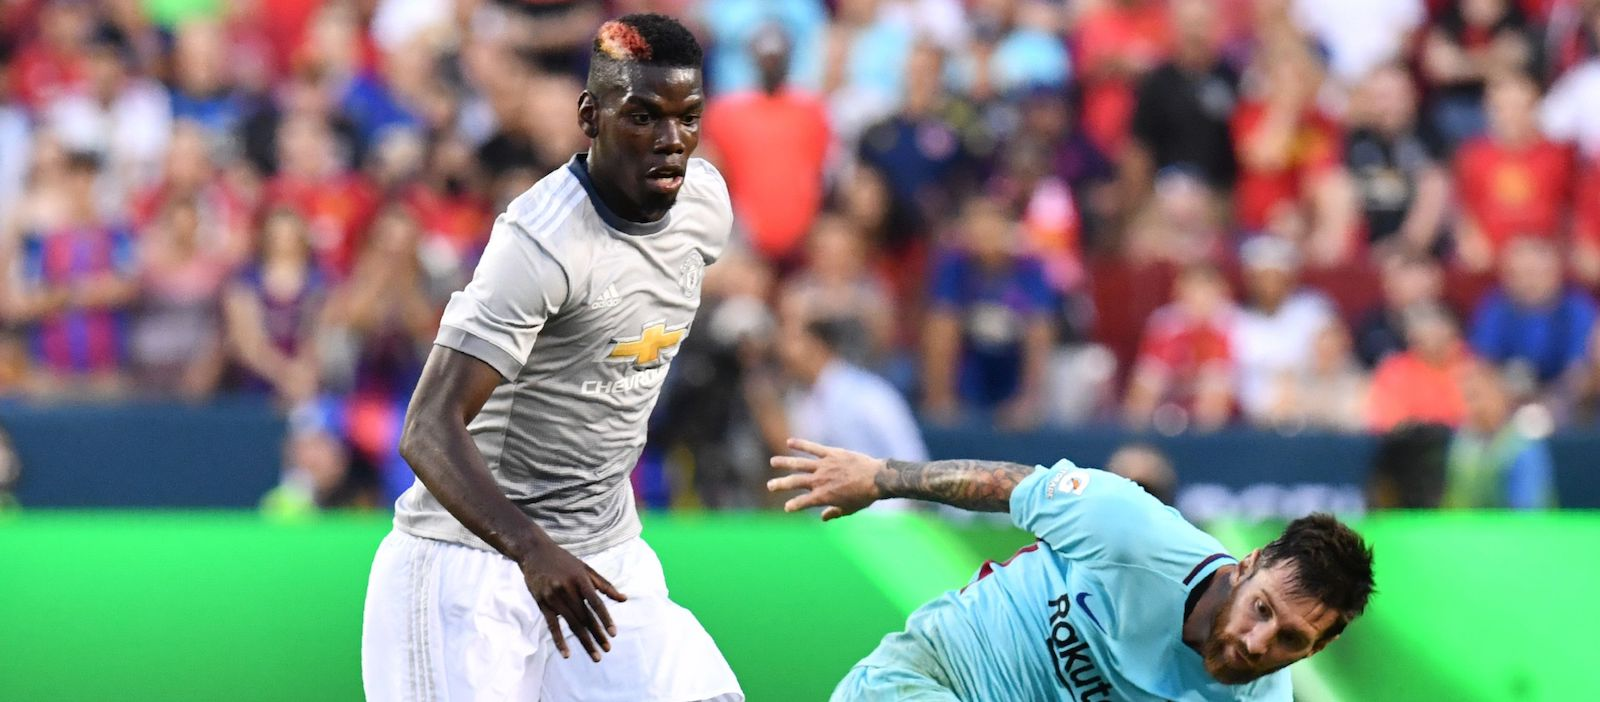 Manchester United fans delighted with Paul Pogba's performance against Barcelona